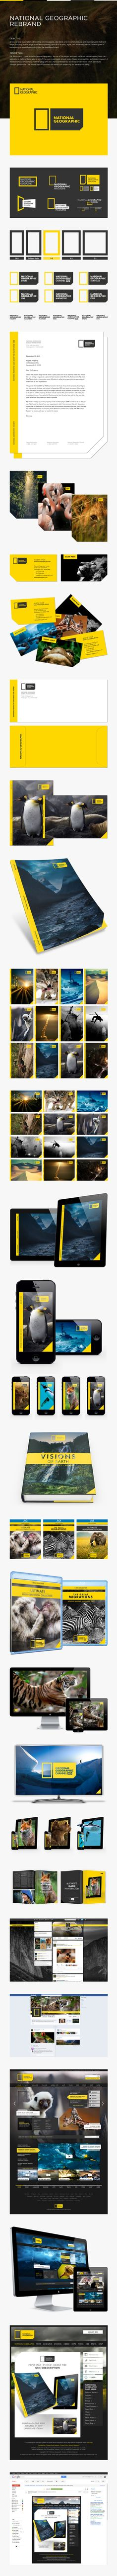 National Geographic branding